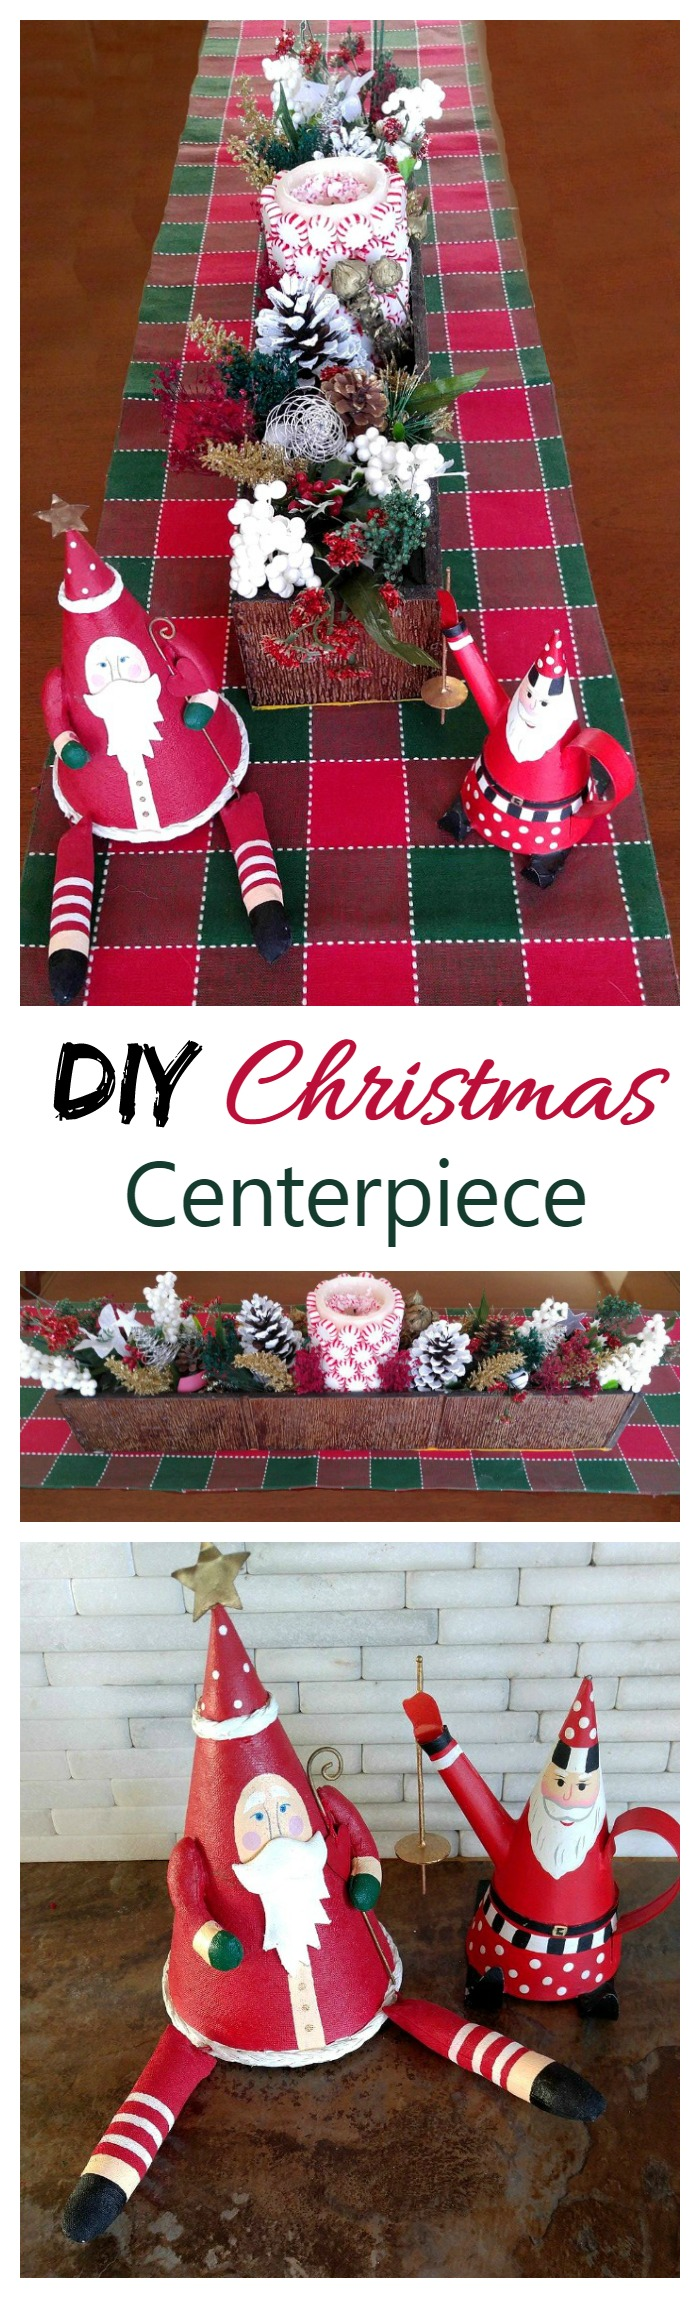 This DIY Christmas Centerpiece is a remake of my Thanksgiving project. Just about an hour changed the seasons for me in such a pretty way!